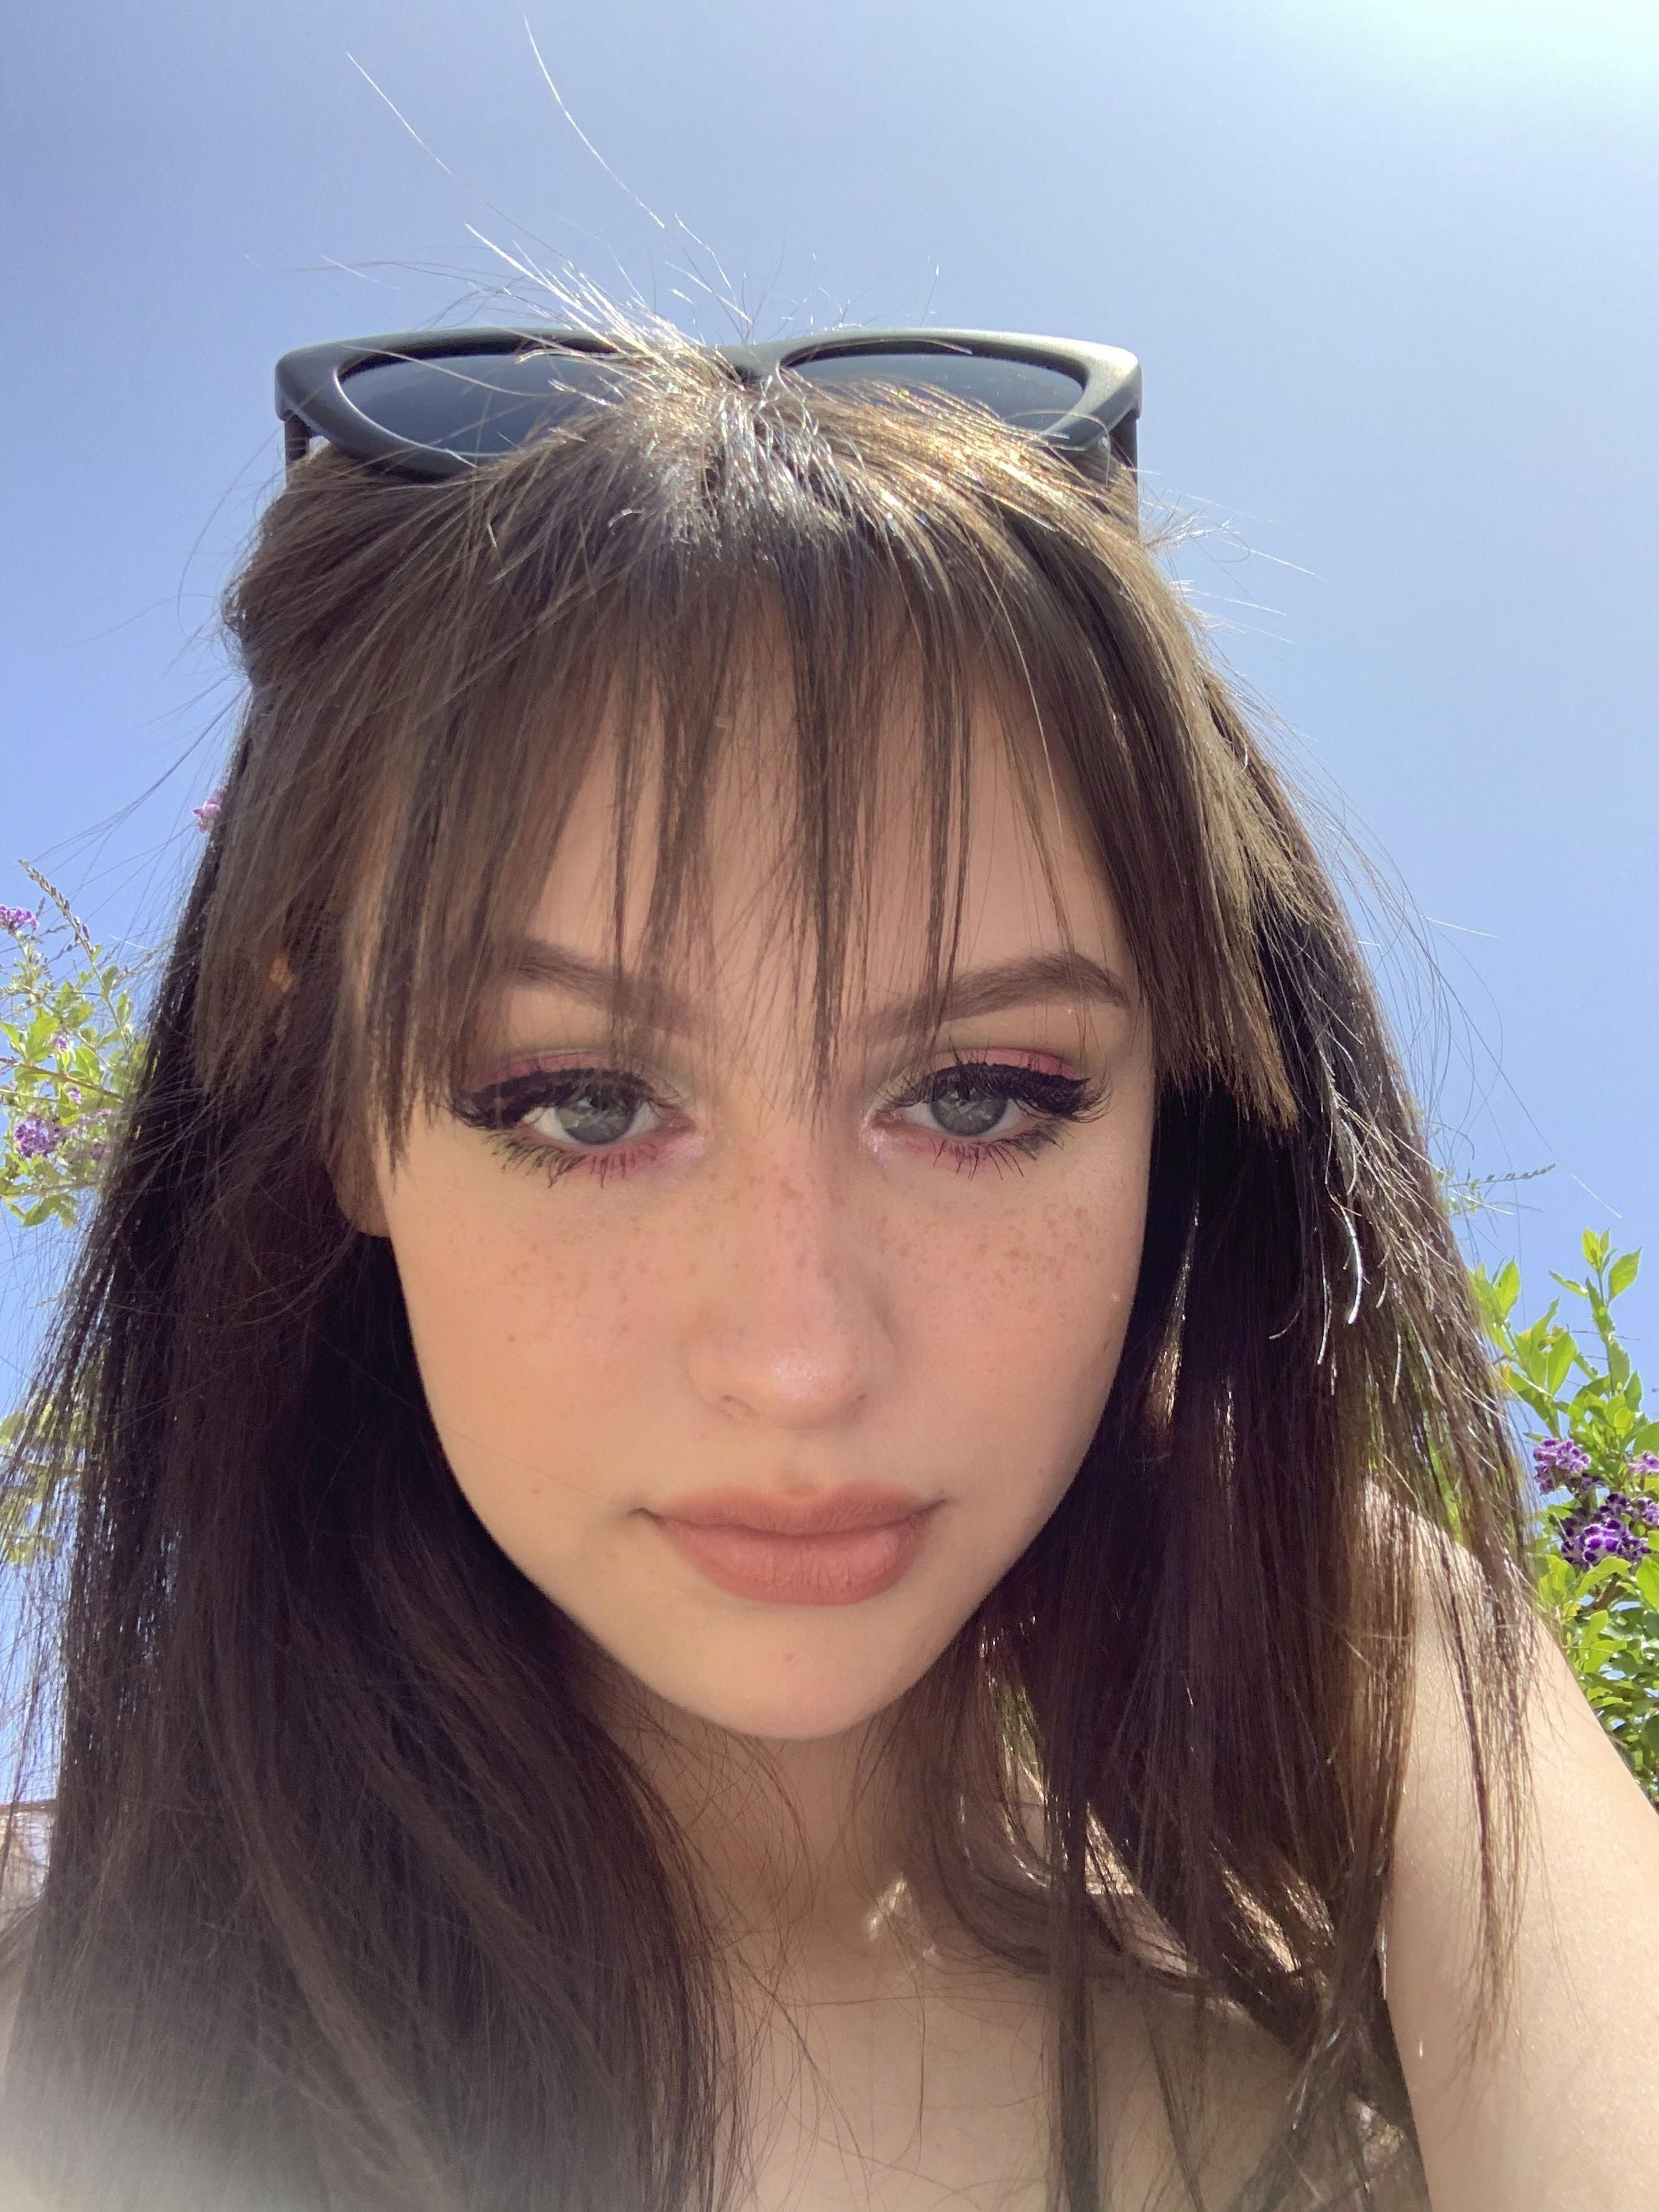 Pin by Ella Anderson on Bangs in 2020 | Haircuts with bangs, Hair styles, How to style bangs